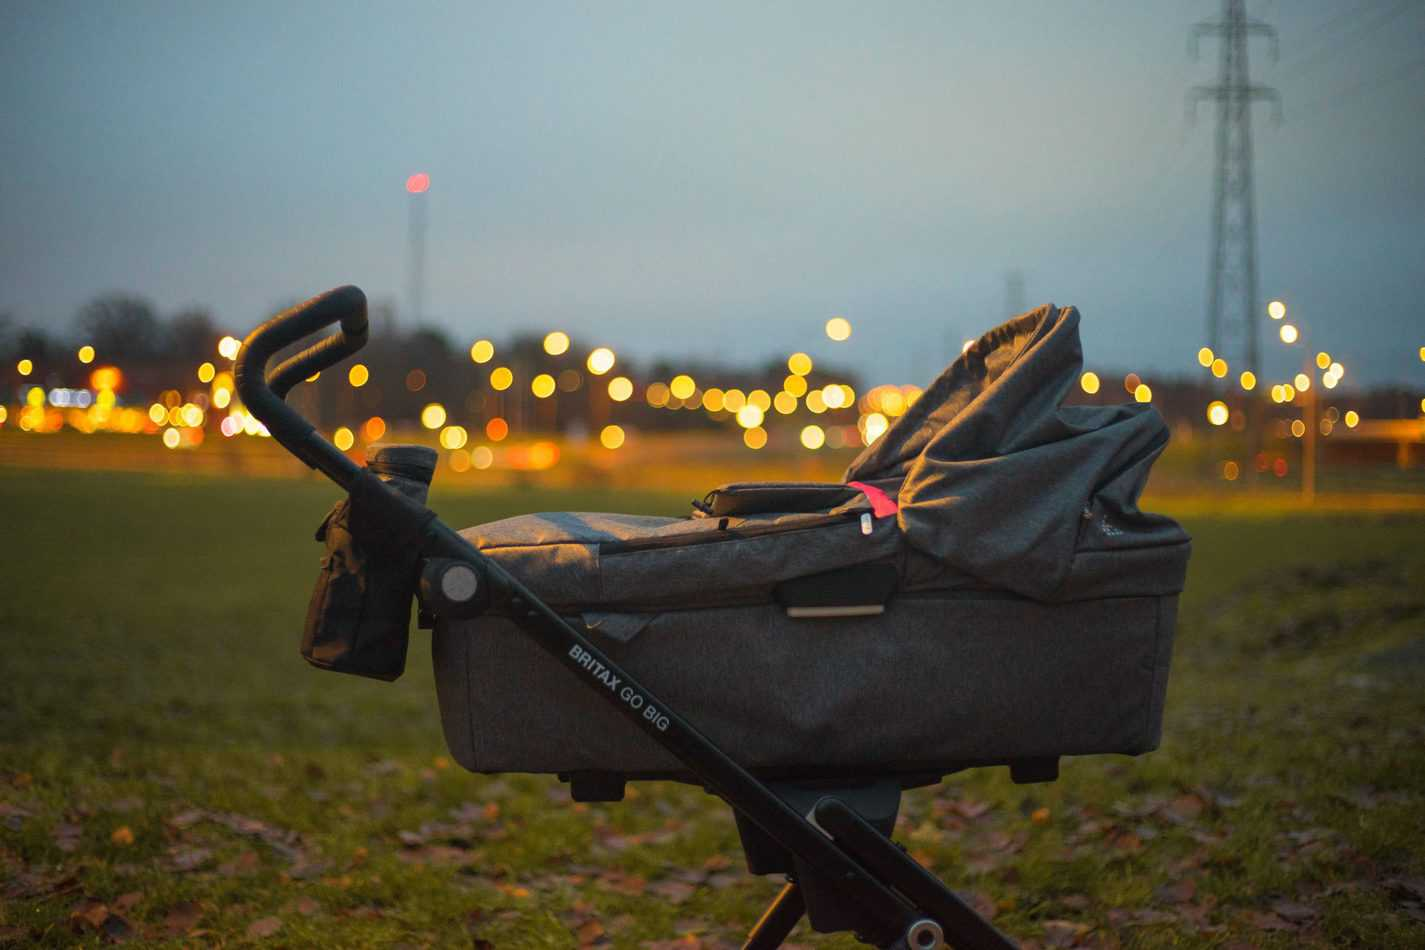 Stroller on grass field